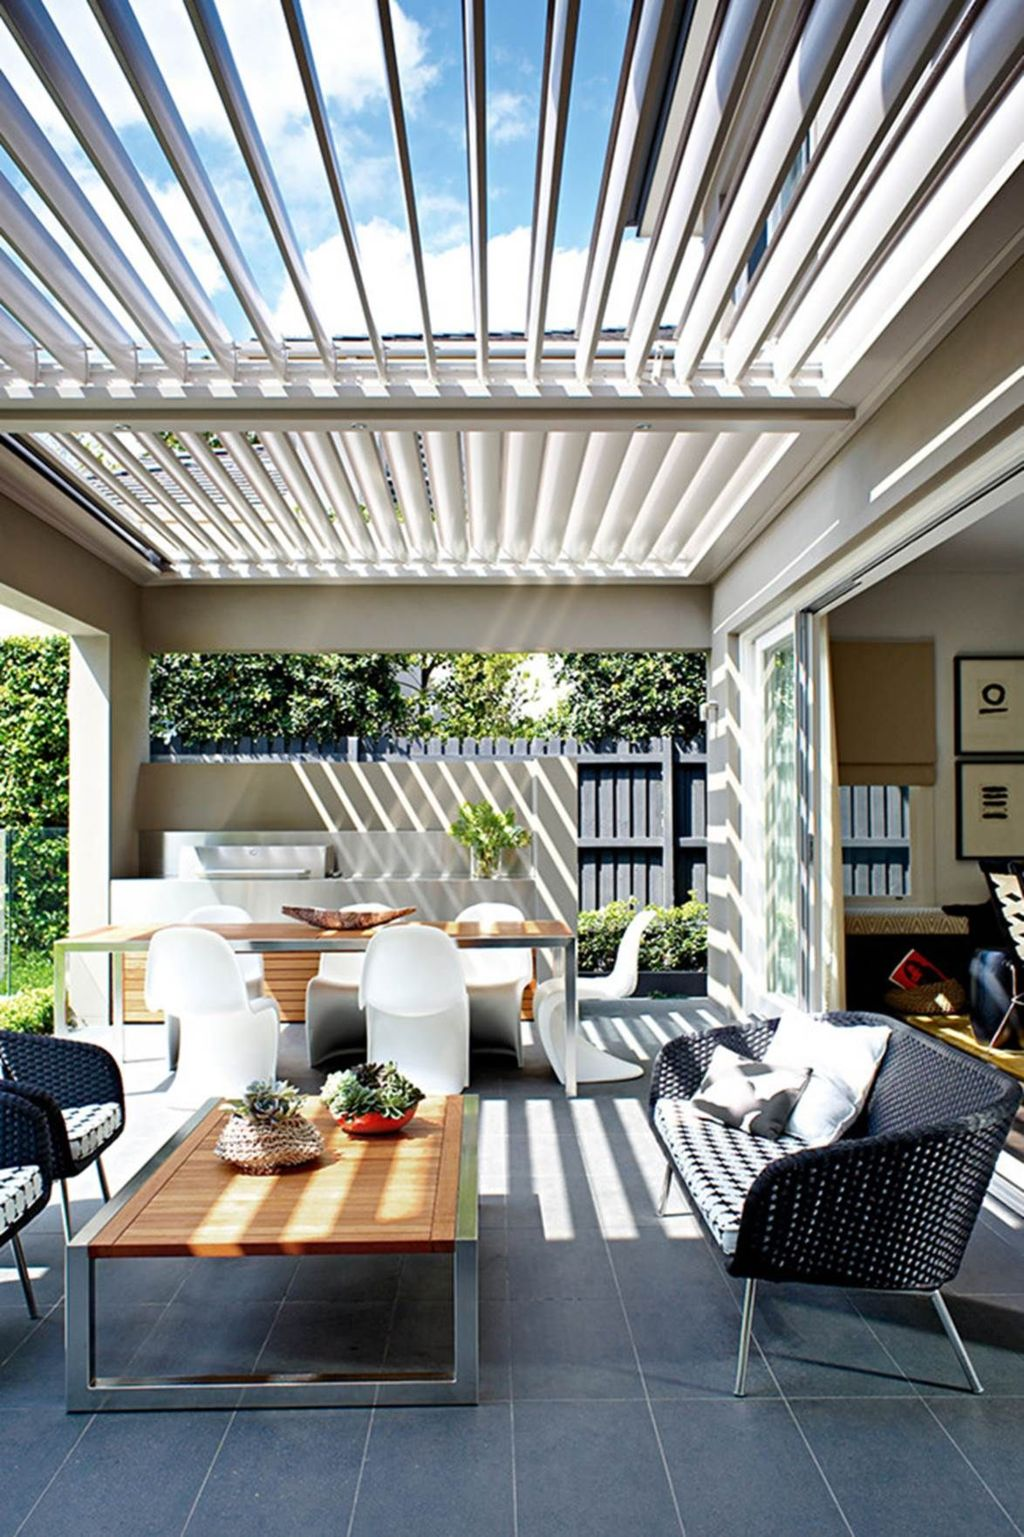 Back porch design ideas that perfect for every home as special space to make it anything you want Part (2)